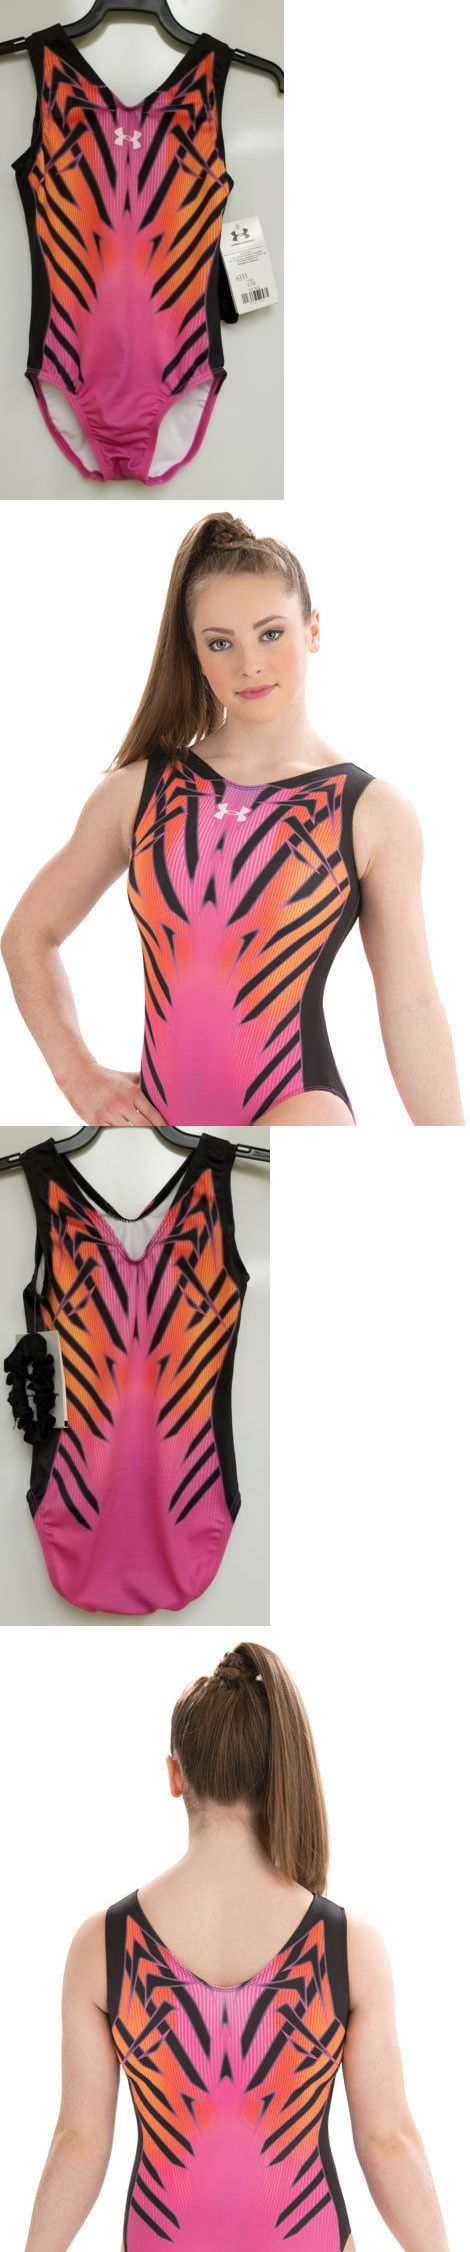 Youth 159170: Under Armour Ua Armourfuse Radiate Leotard New. Size Child Medium Cm. -> BUY IT NOW ONLY: $49 on eBay!